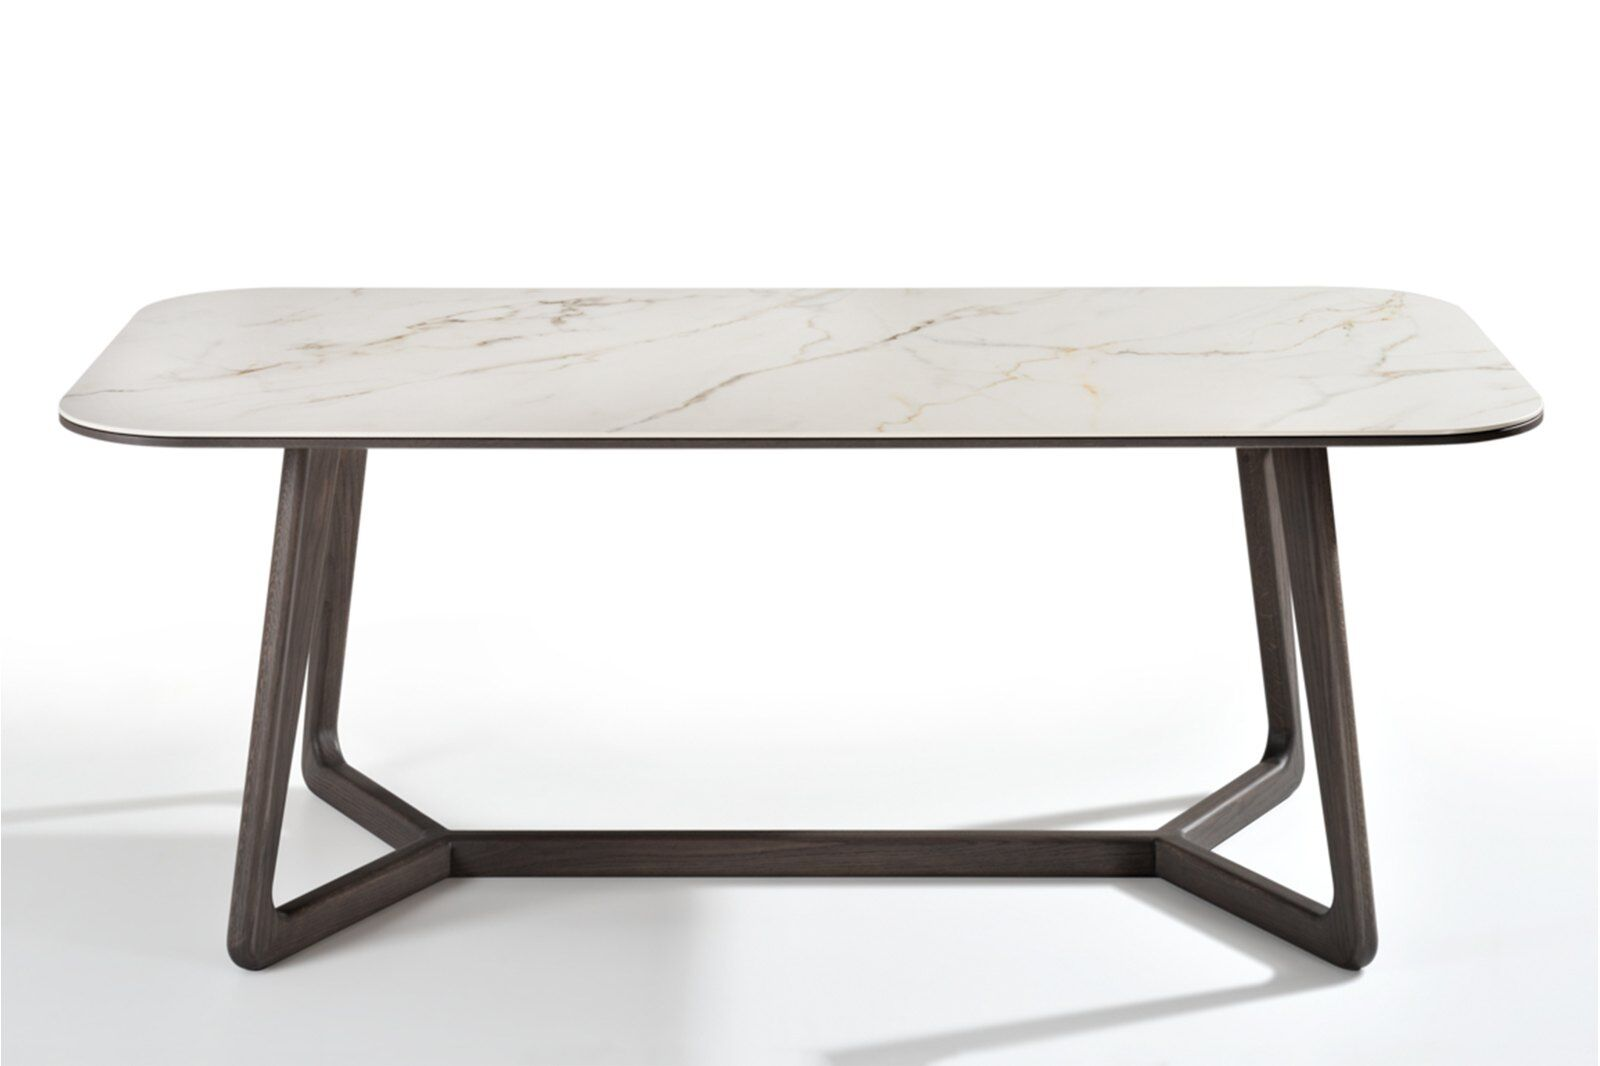 Totem Marble-effect Ceramic Top Dining Table 220cm / 1